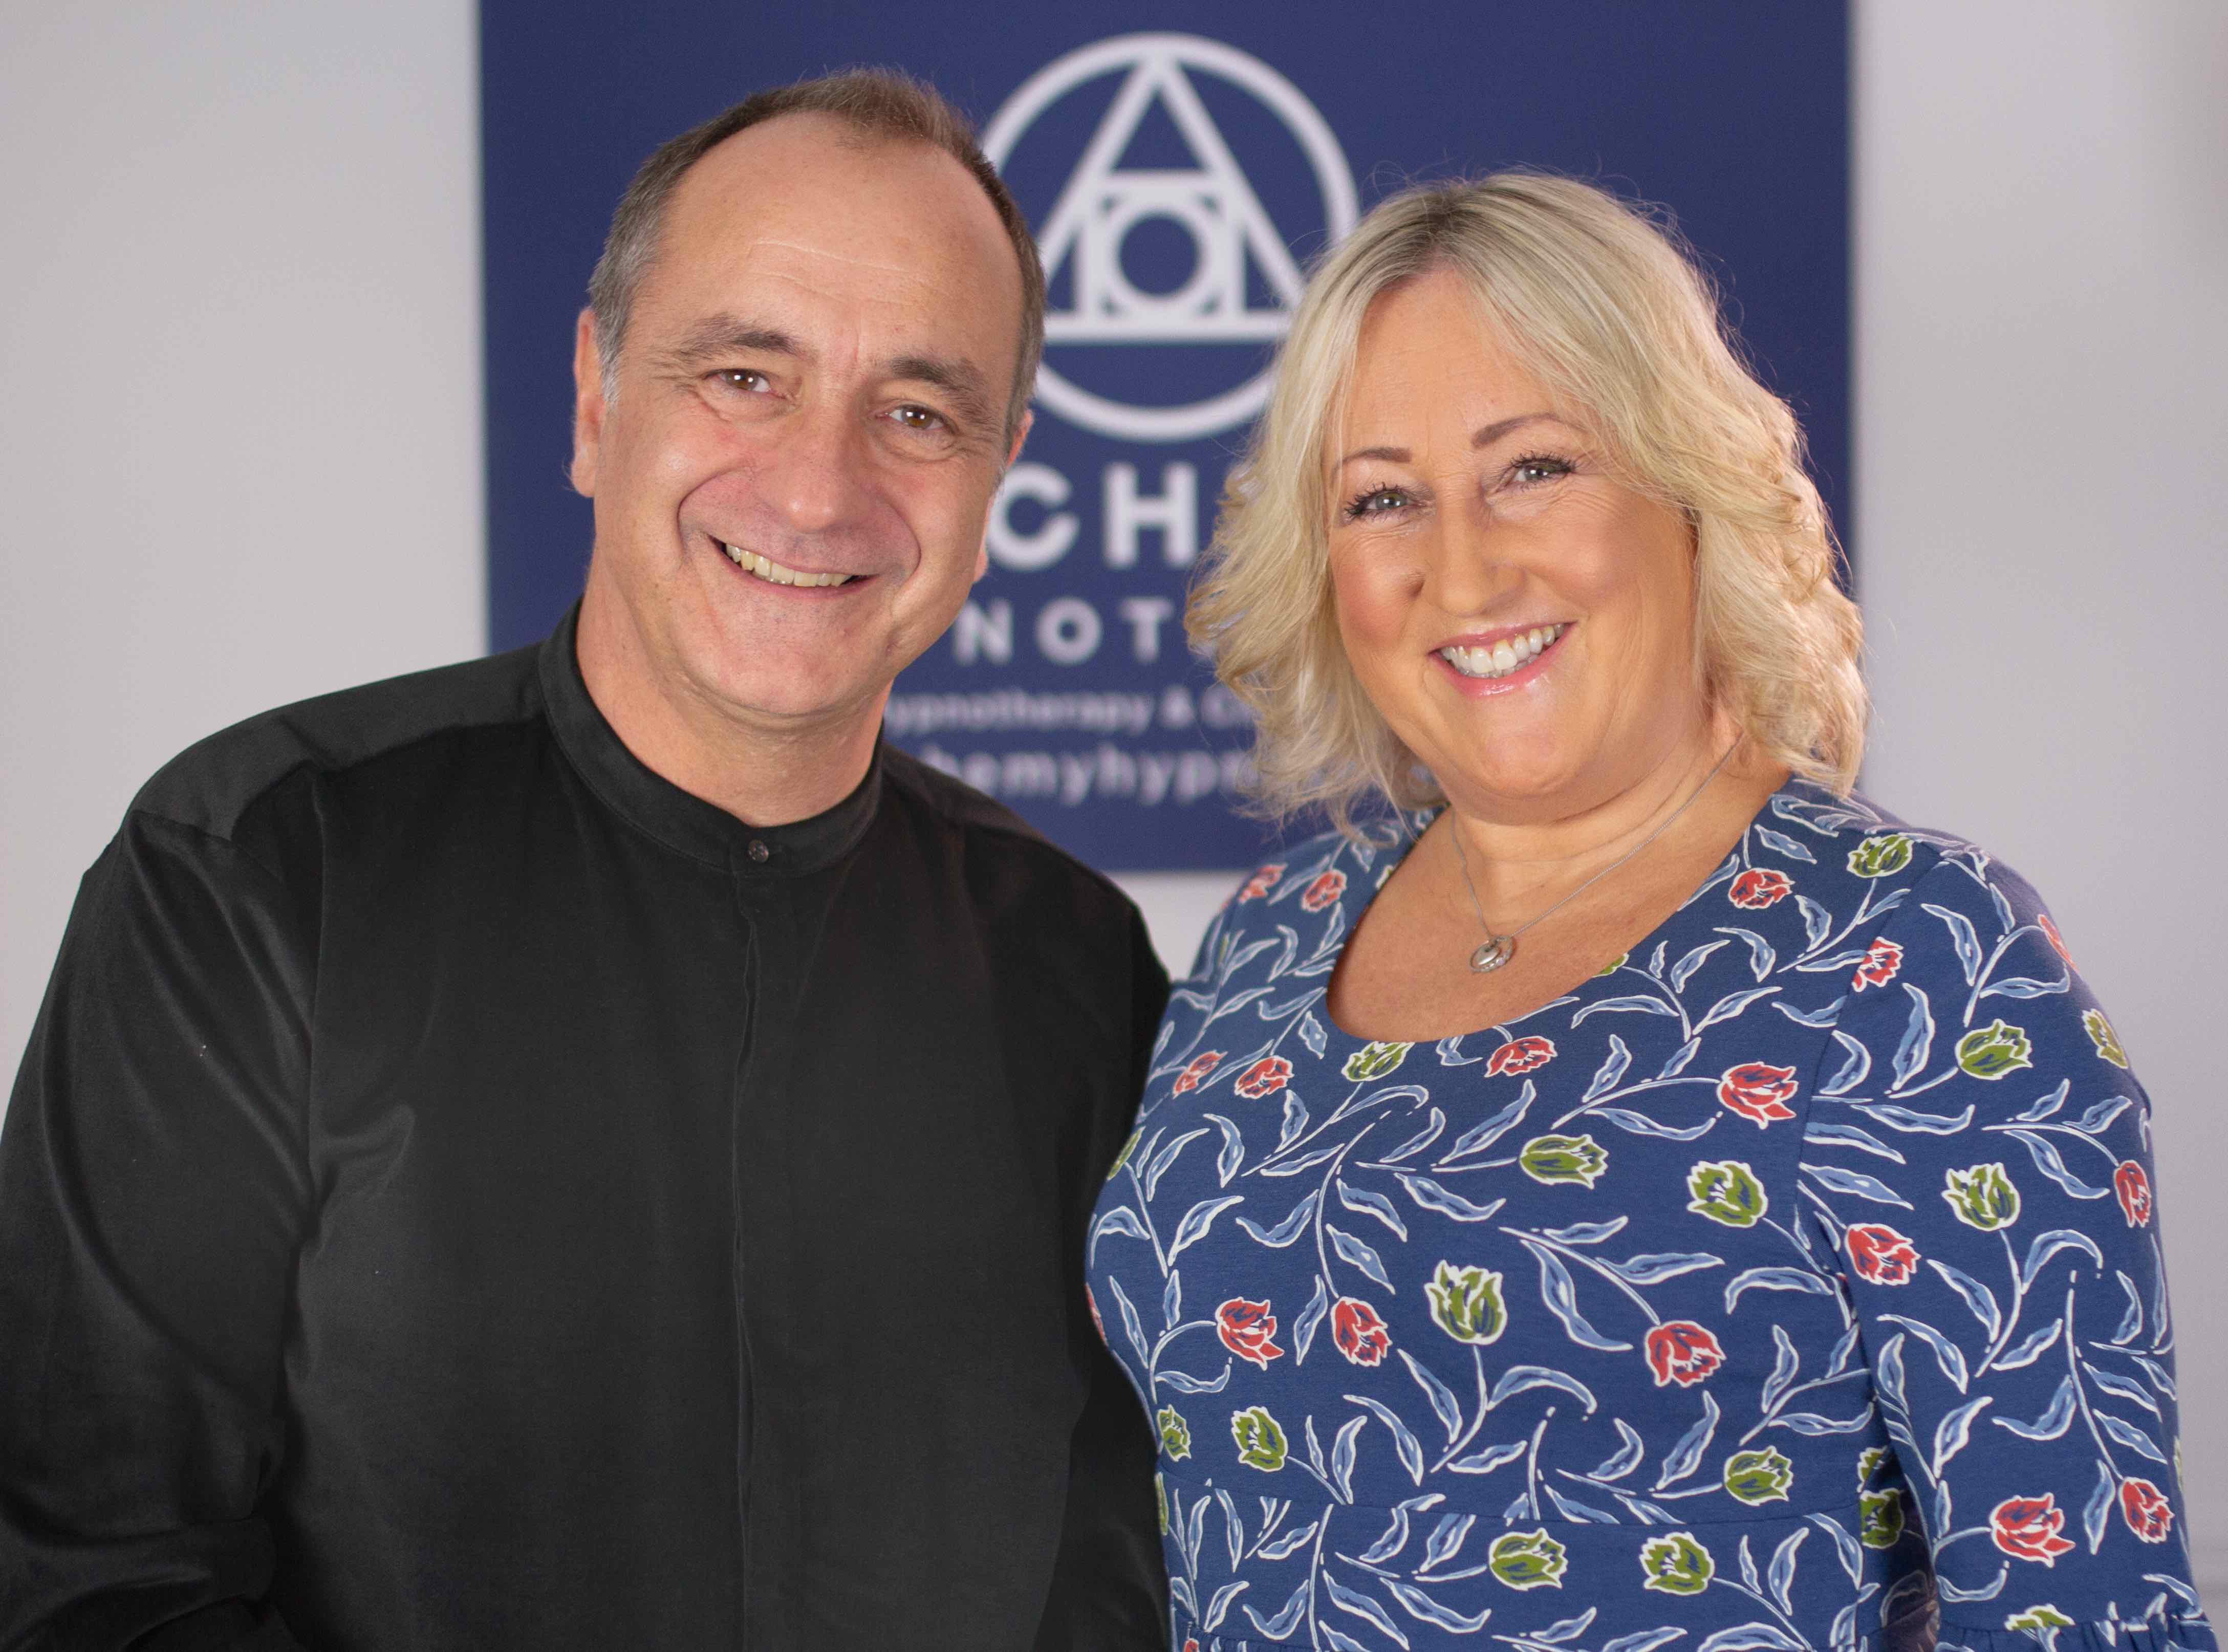 This photo shows Gareth and Enfys, The Alchemists at Alchemy Hypnotherapy